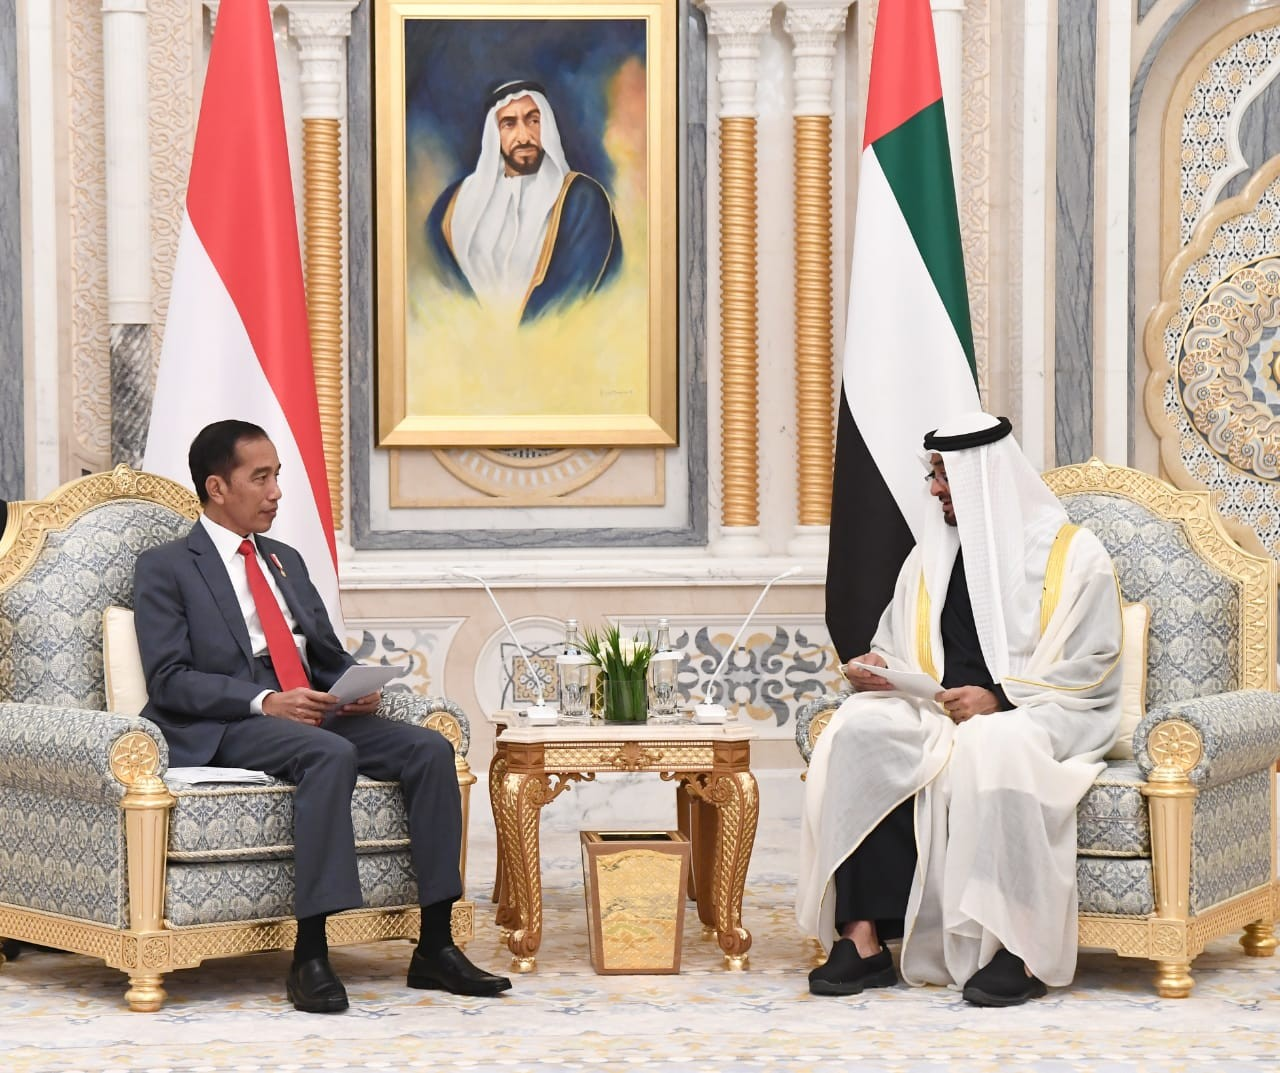 Indonesia officially sets up essential business 'travel corridor' with UAE